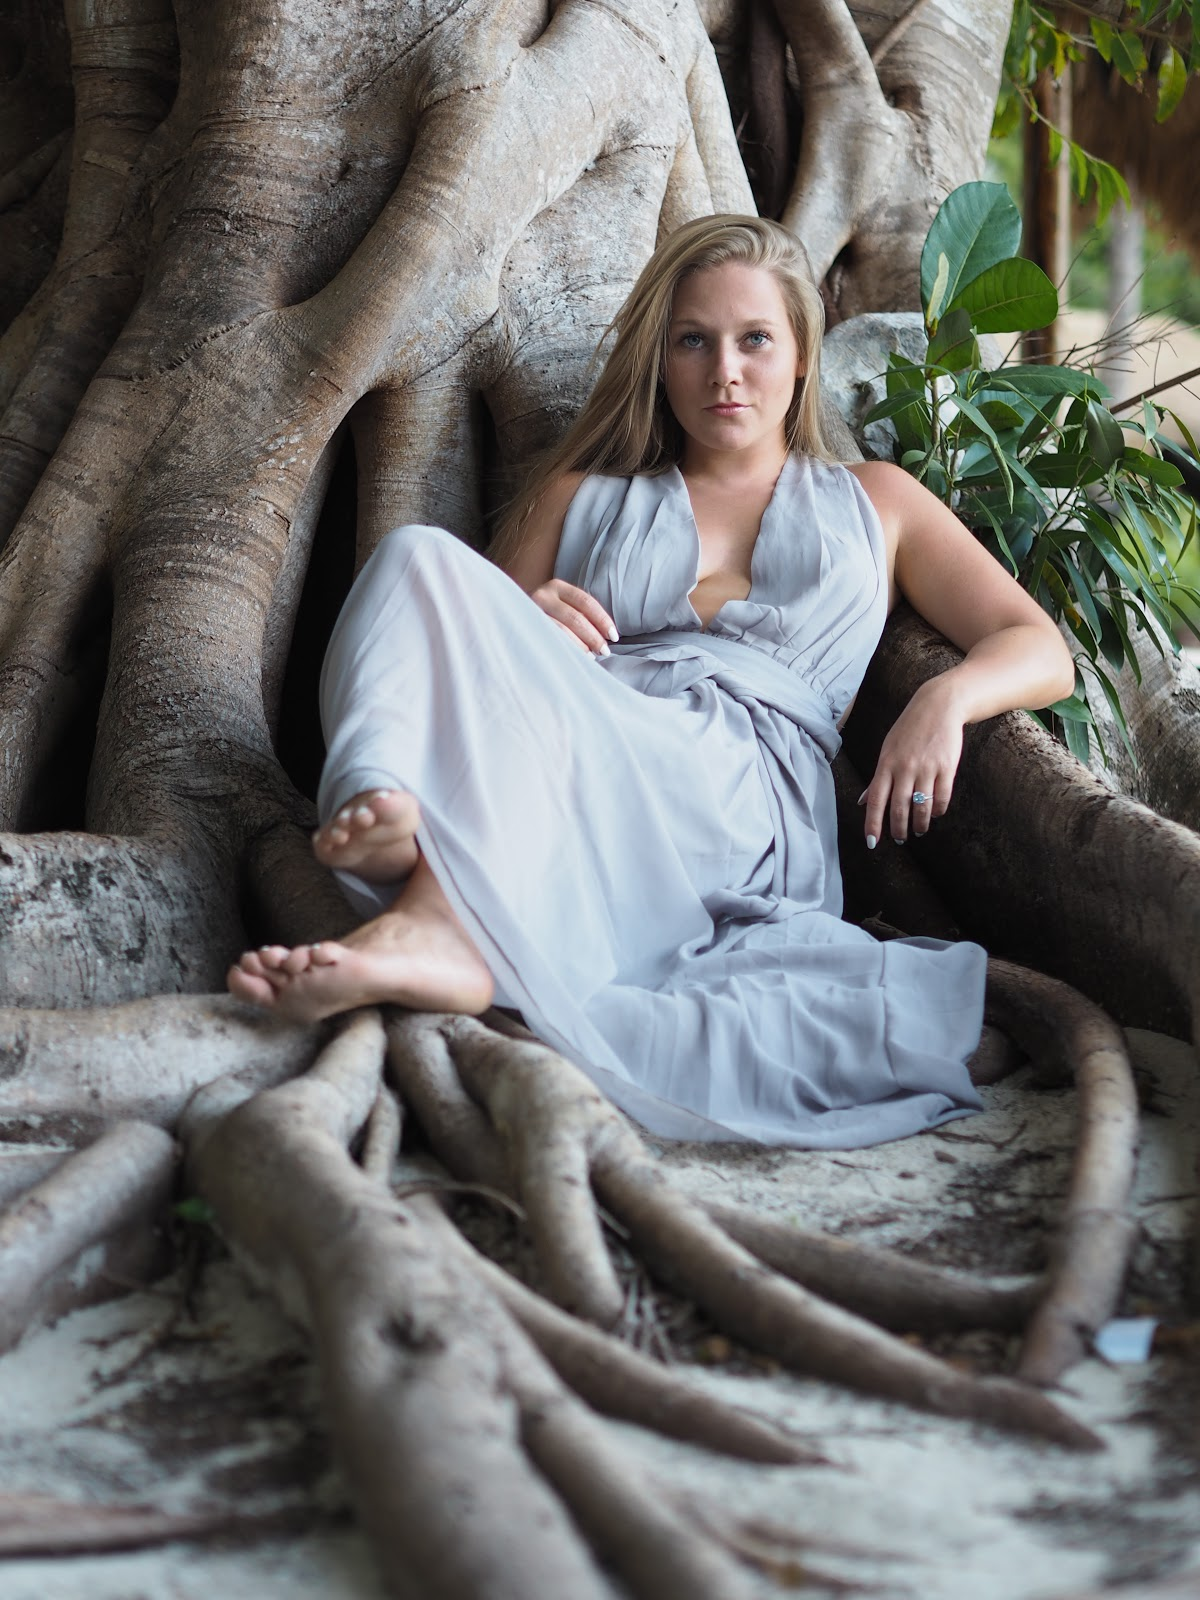 Katie Matthews, Blonde Girl wearing Grey dress and sitting under huge tree roots